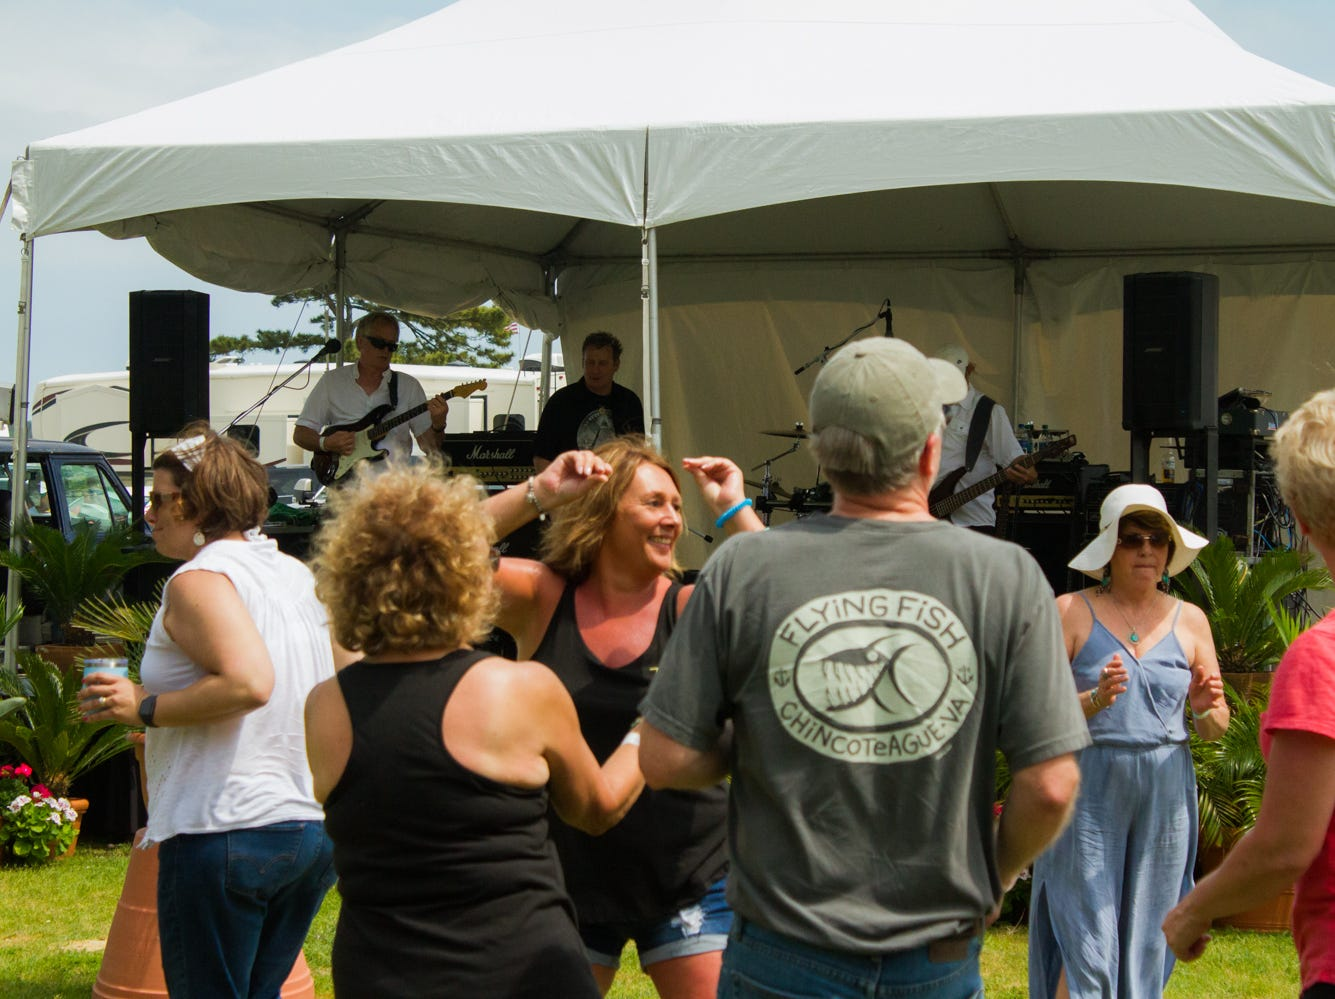 Festival attendees dance to the sounds of Front Page News on Saturday, May 4, 2019 at the Chincoteague Seafood Festival in Chincoteague, VA.